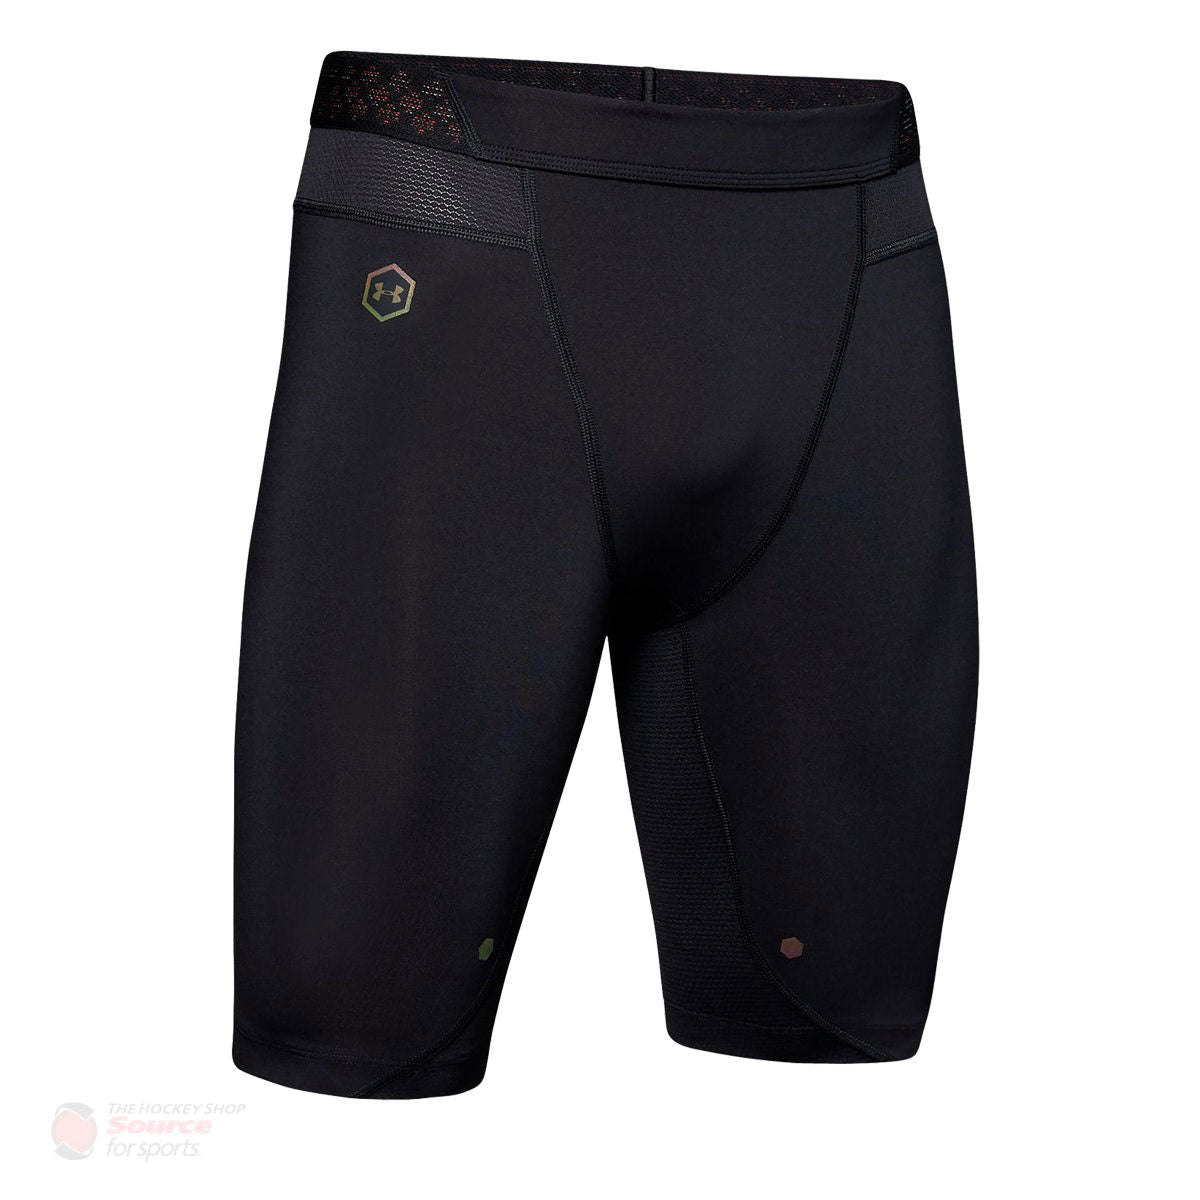 Under Armour Rush Men's Compression Shorts